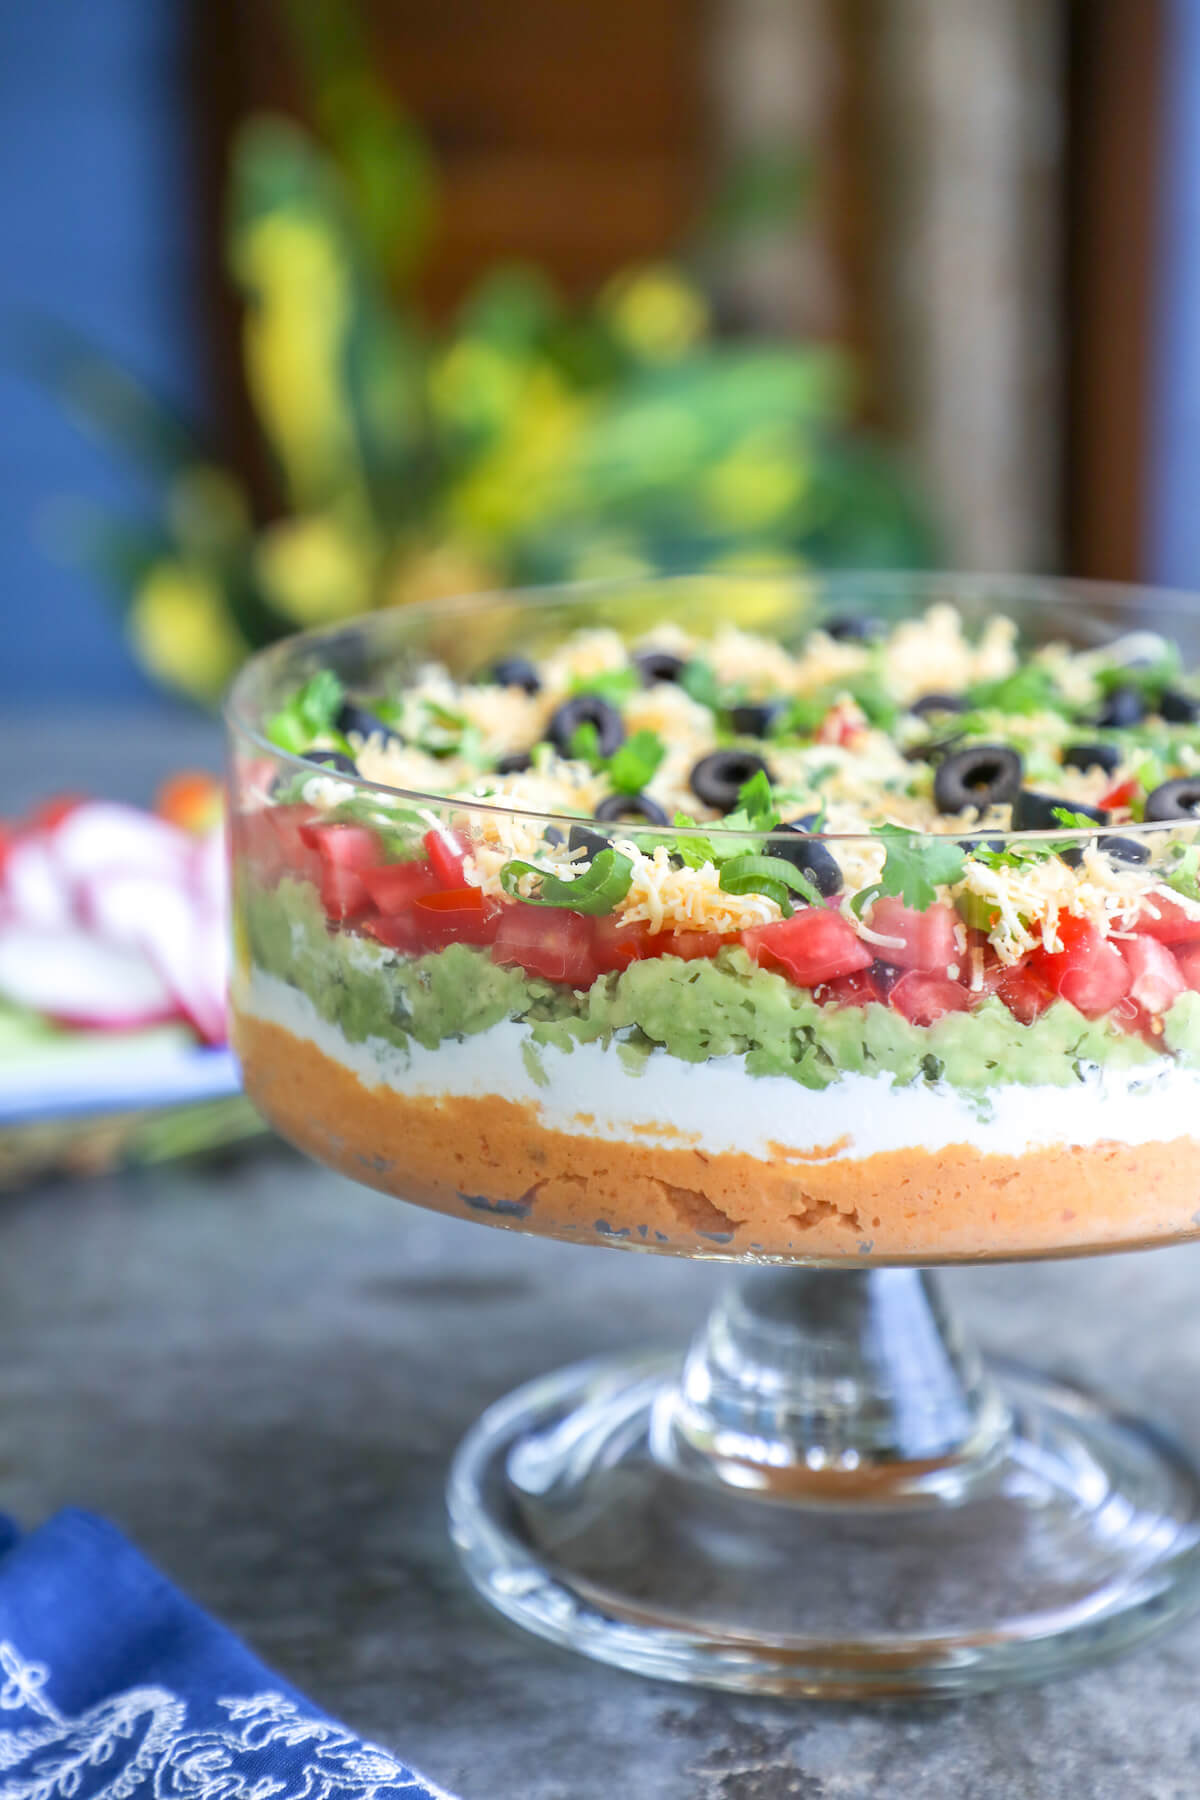 Keto 7 Layer Dip - for all of your Mexican themed party needs - or when you just want a low carb appetizer recipe to satisfy your nacho cravings!  Gluten free, bean free, nut free